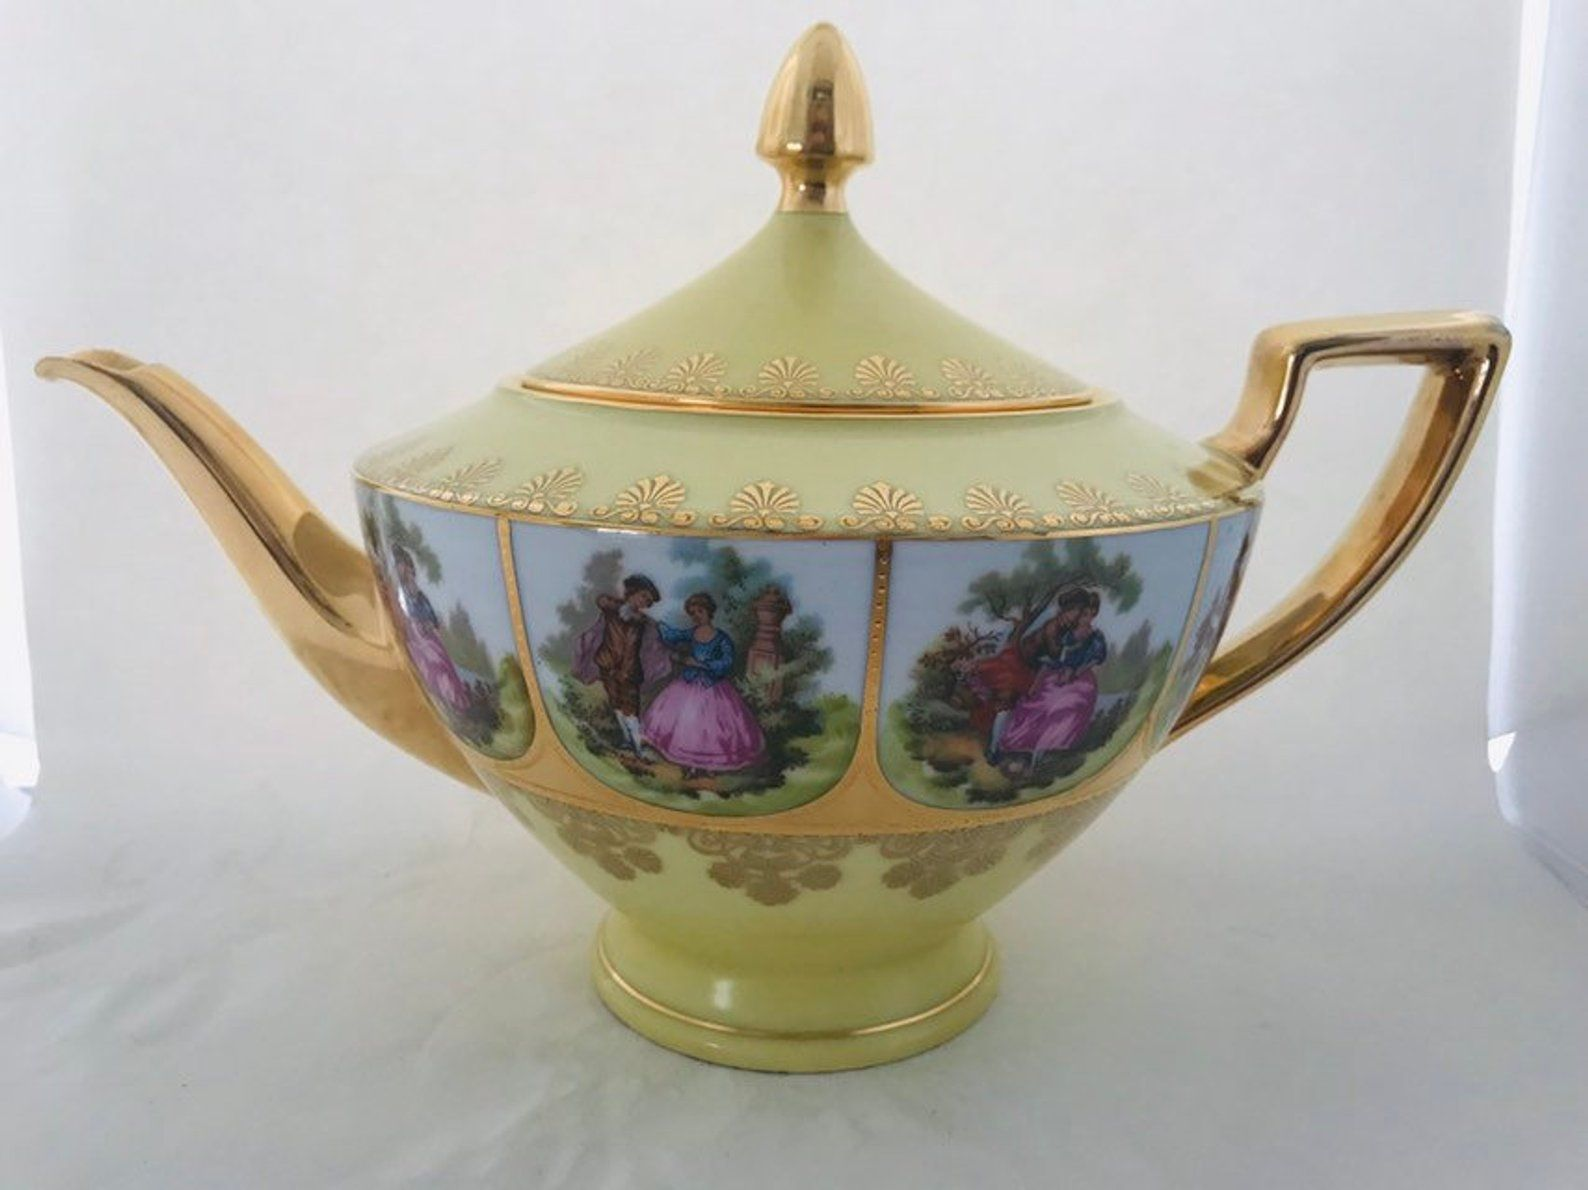 Vintage Fragonard German Teapot With Panels Depicting A Courting Couple Gilt German Bone China Teapot Circa 1940 Tea Pots Bone China Teapots How To Make Tea